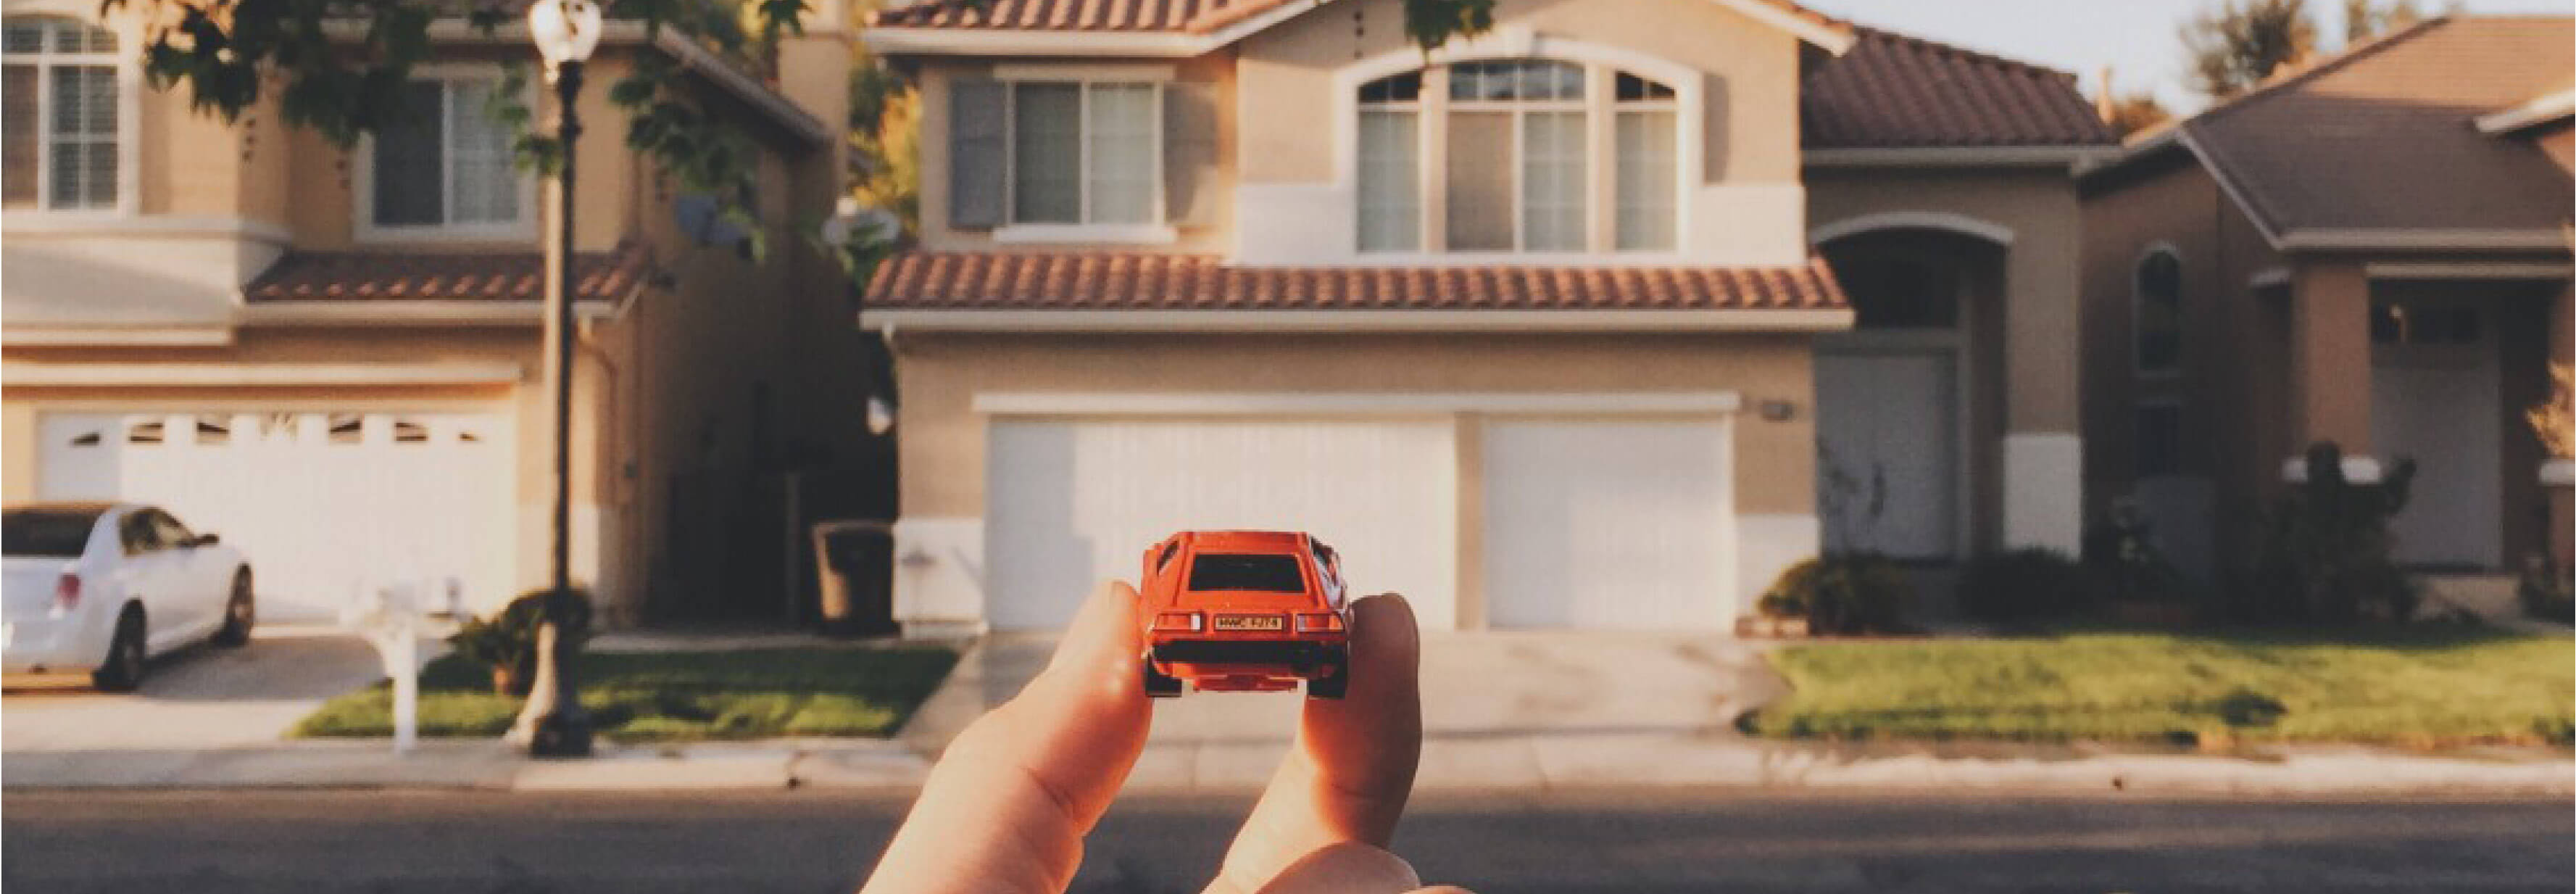 toy car, fantasy, dream house, mortgage